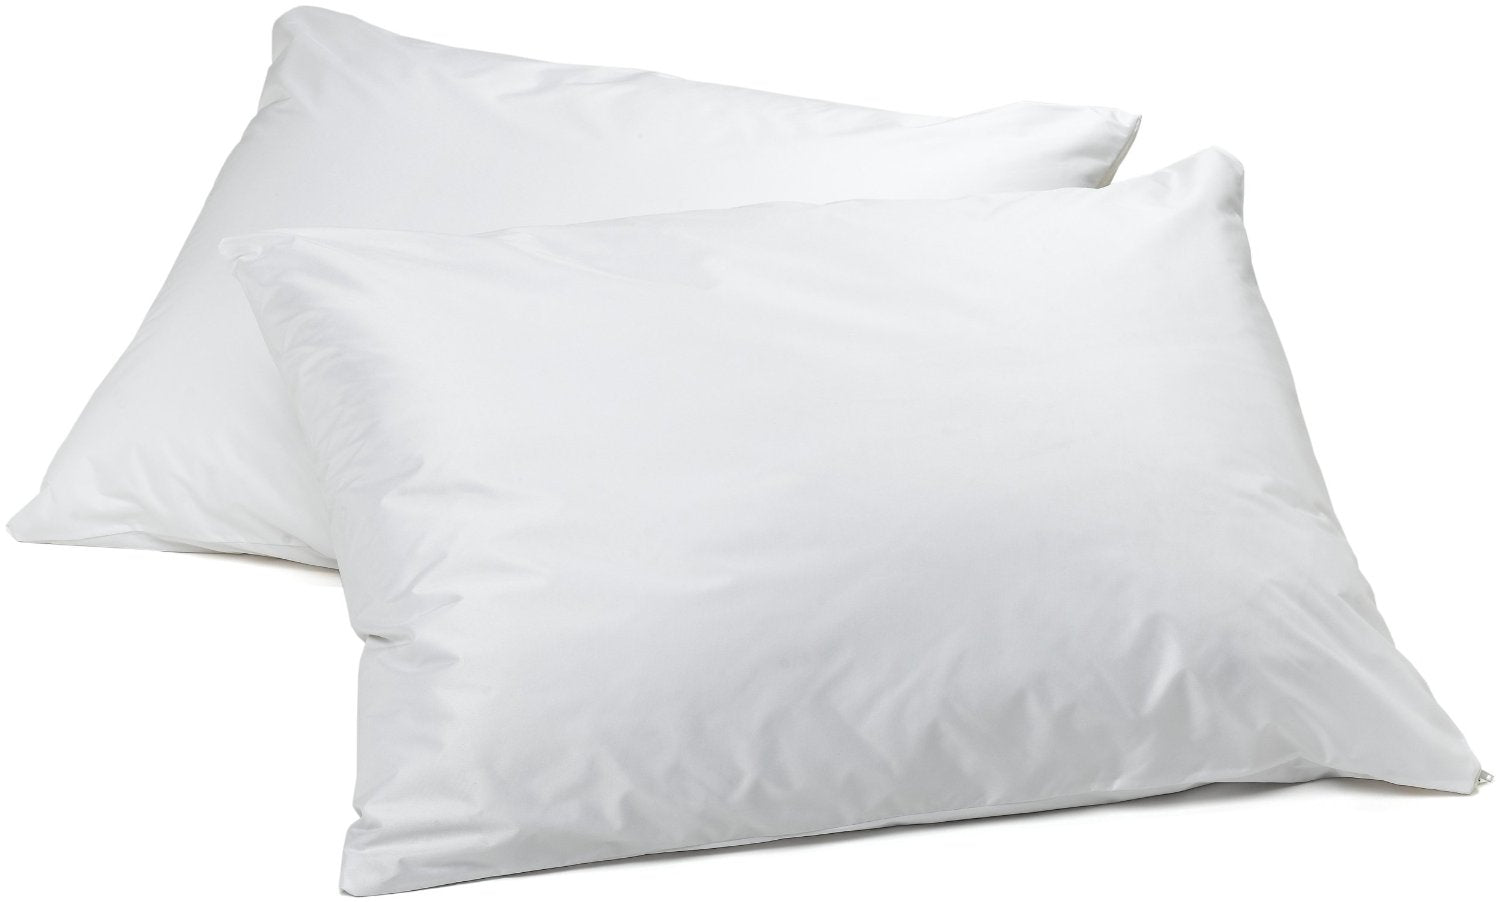 Waterproof Pillowcase Protector